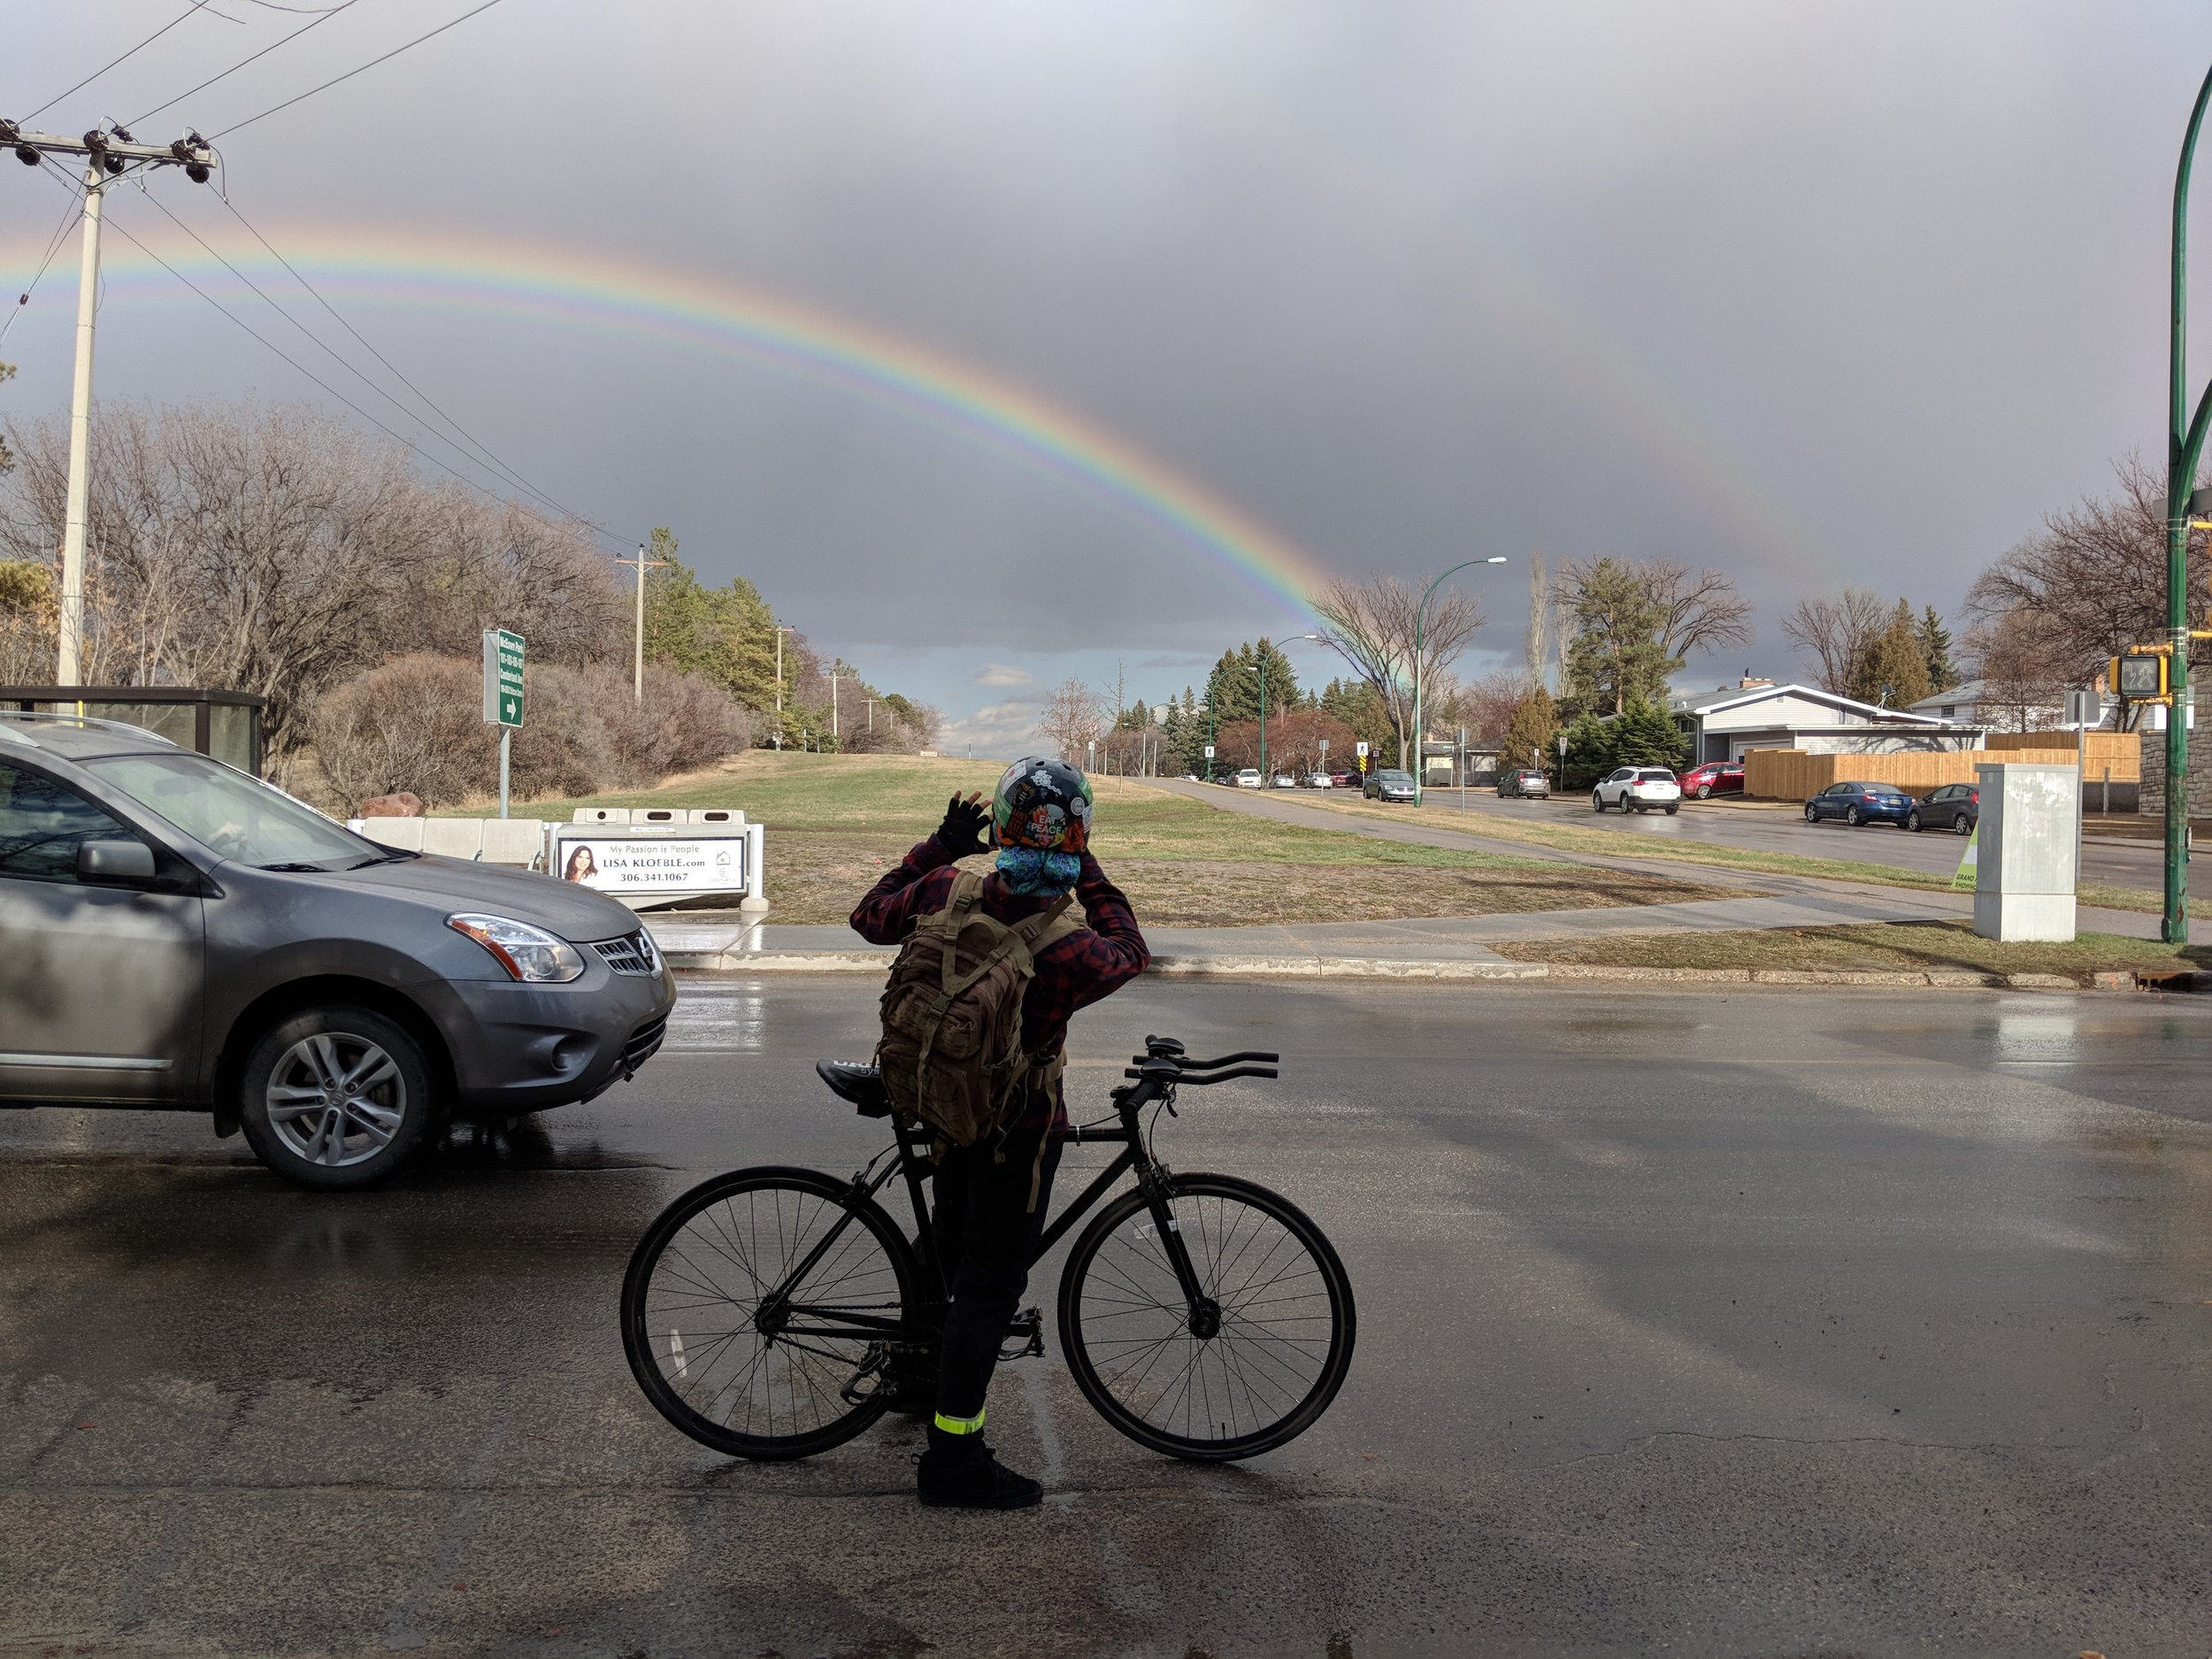 Riding a bicycle gives the freedom to stop to take a picture of an unexpected rainbow.